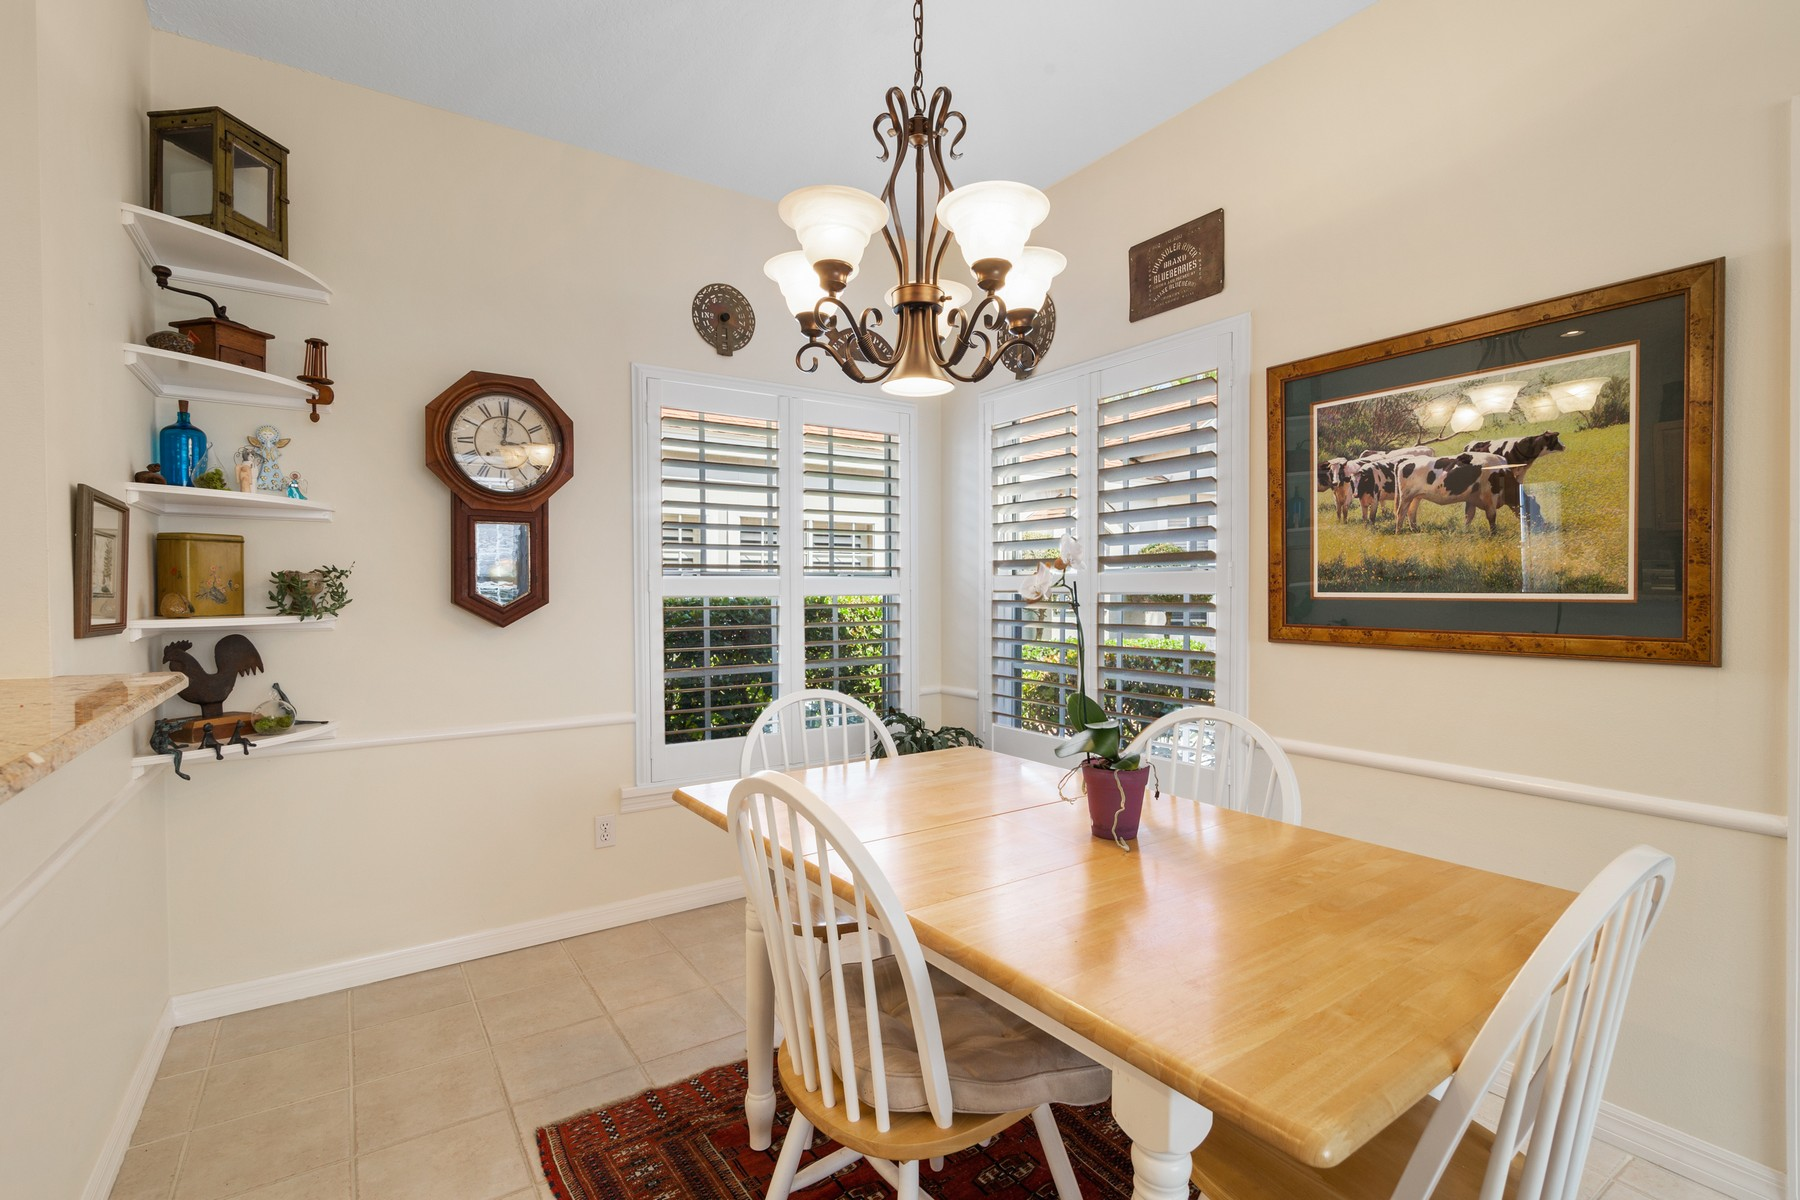 Additional photo for property listing at SEA OAKS RIVER HOME 8837 Lakeside Circle Vero Beach, Florida 32963 United States